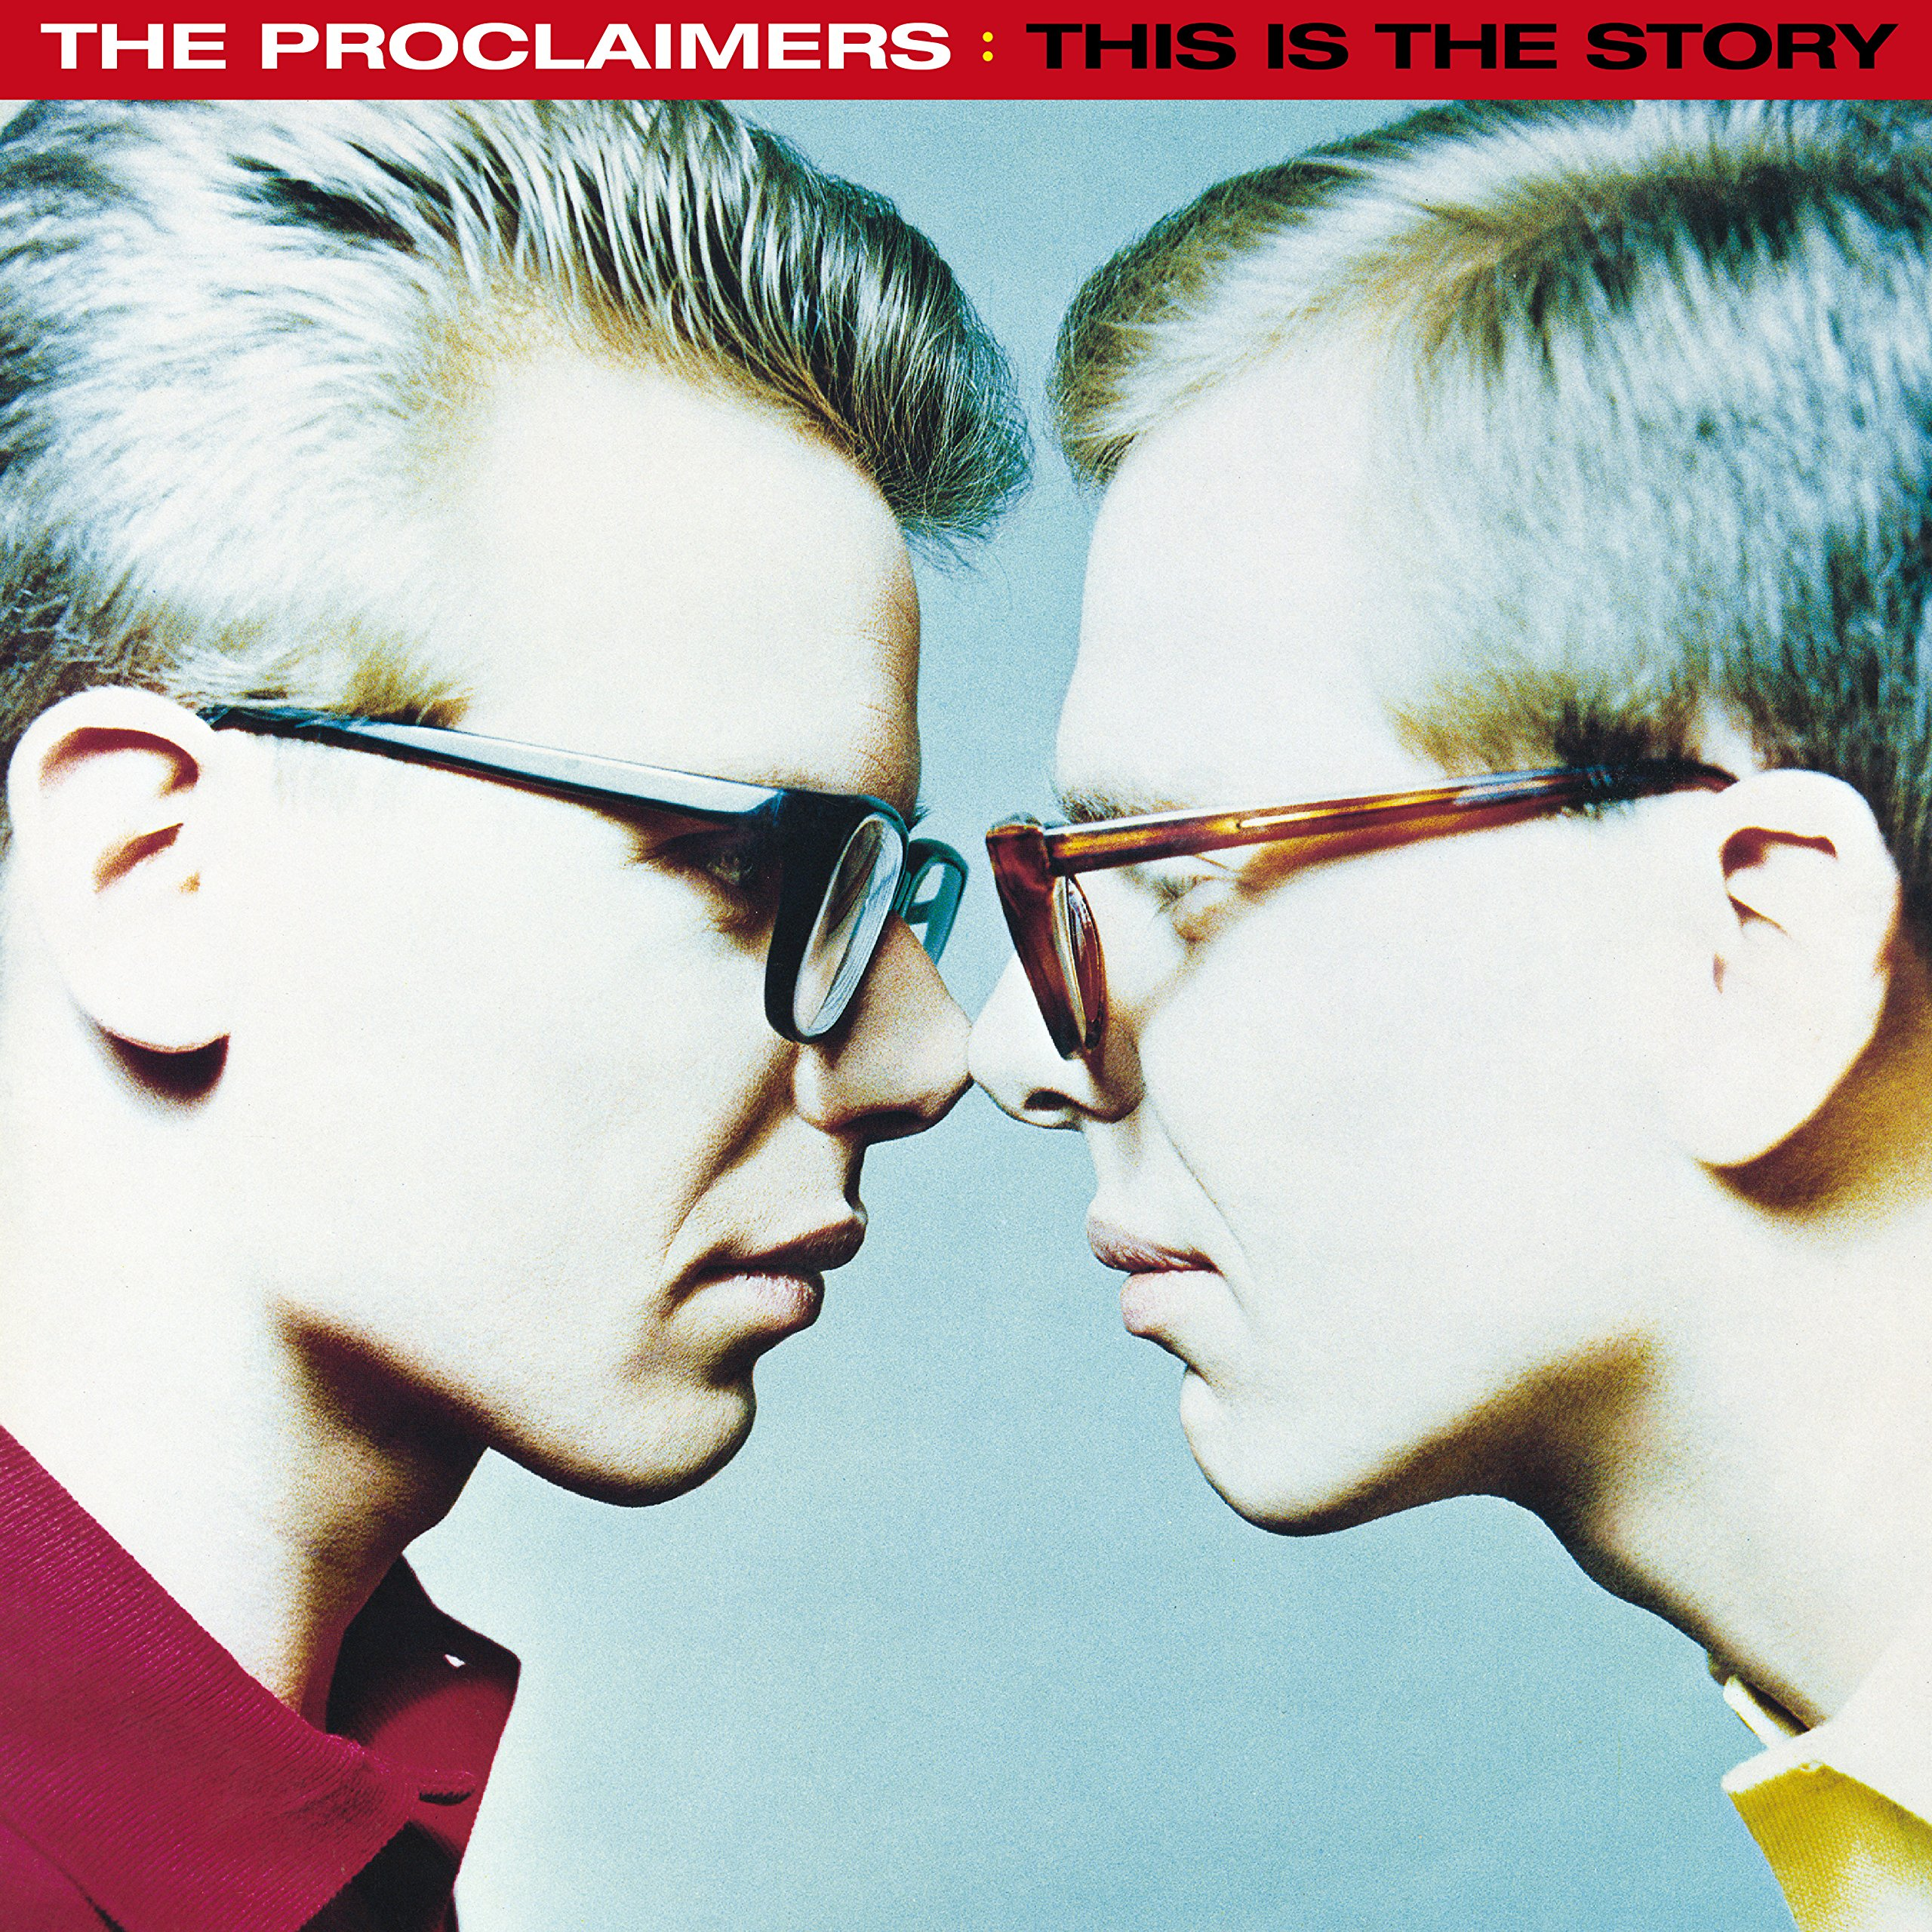 The Proclaimers - This Is The Story (LP Vinyl)